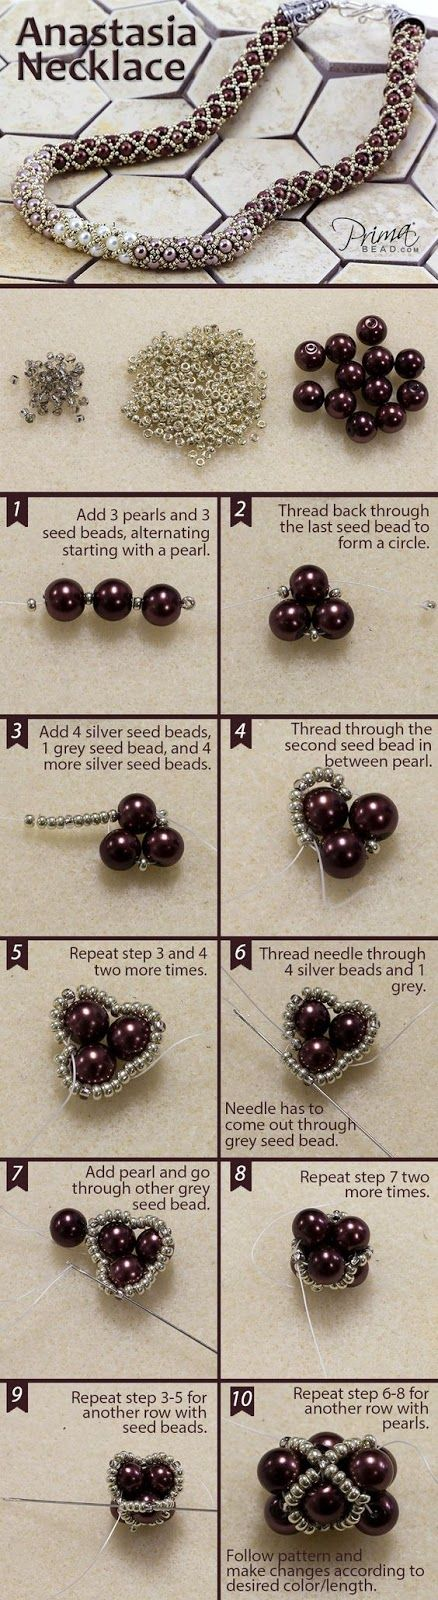 jewelry earrings on multi cones finishing bead diy best trish seed with a handmade pinterest beaded beads necklaces images statement w trishw necklace make strand